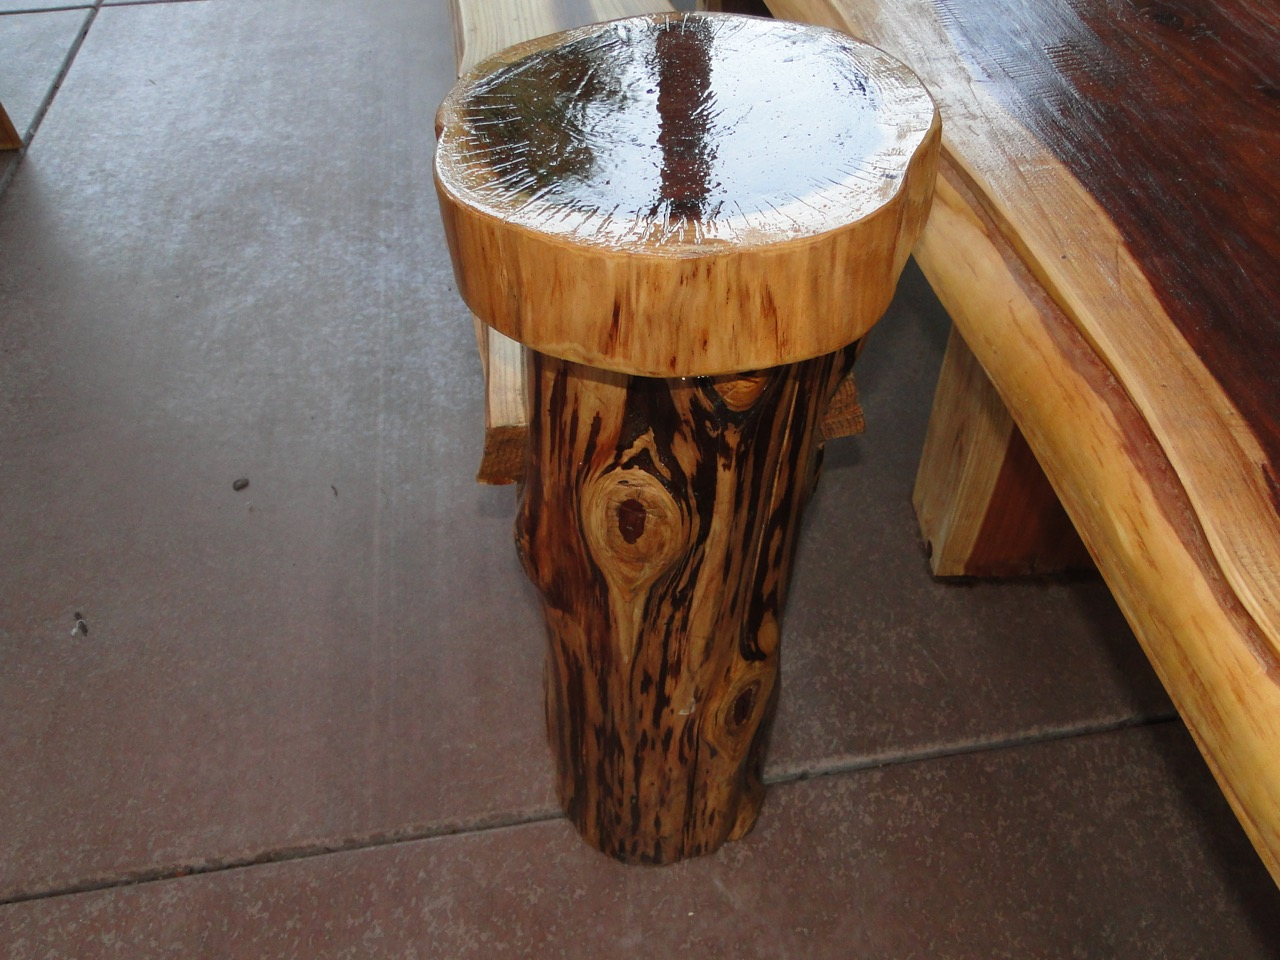 A1 Stump Reclaimed Furniture - 118